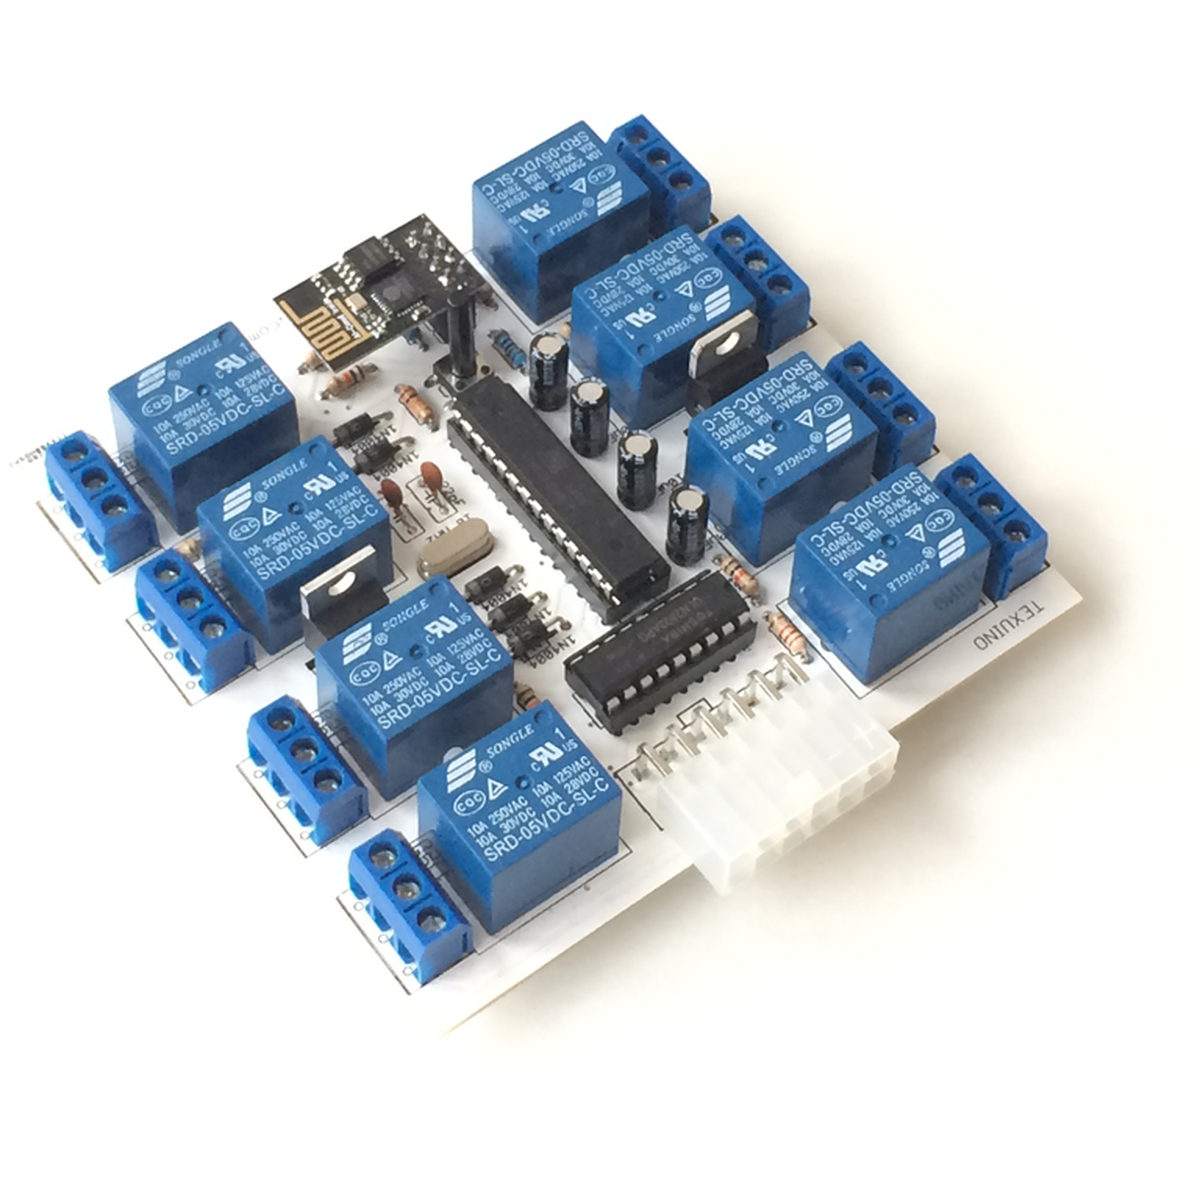 Wi-Fi Relay Board  8 Relays/10 Inputs  Android app from Geekchic on